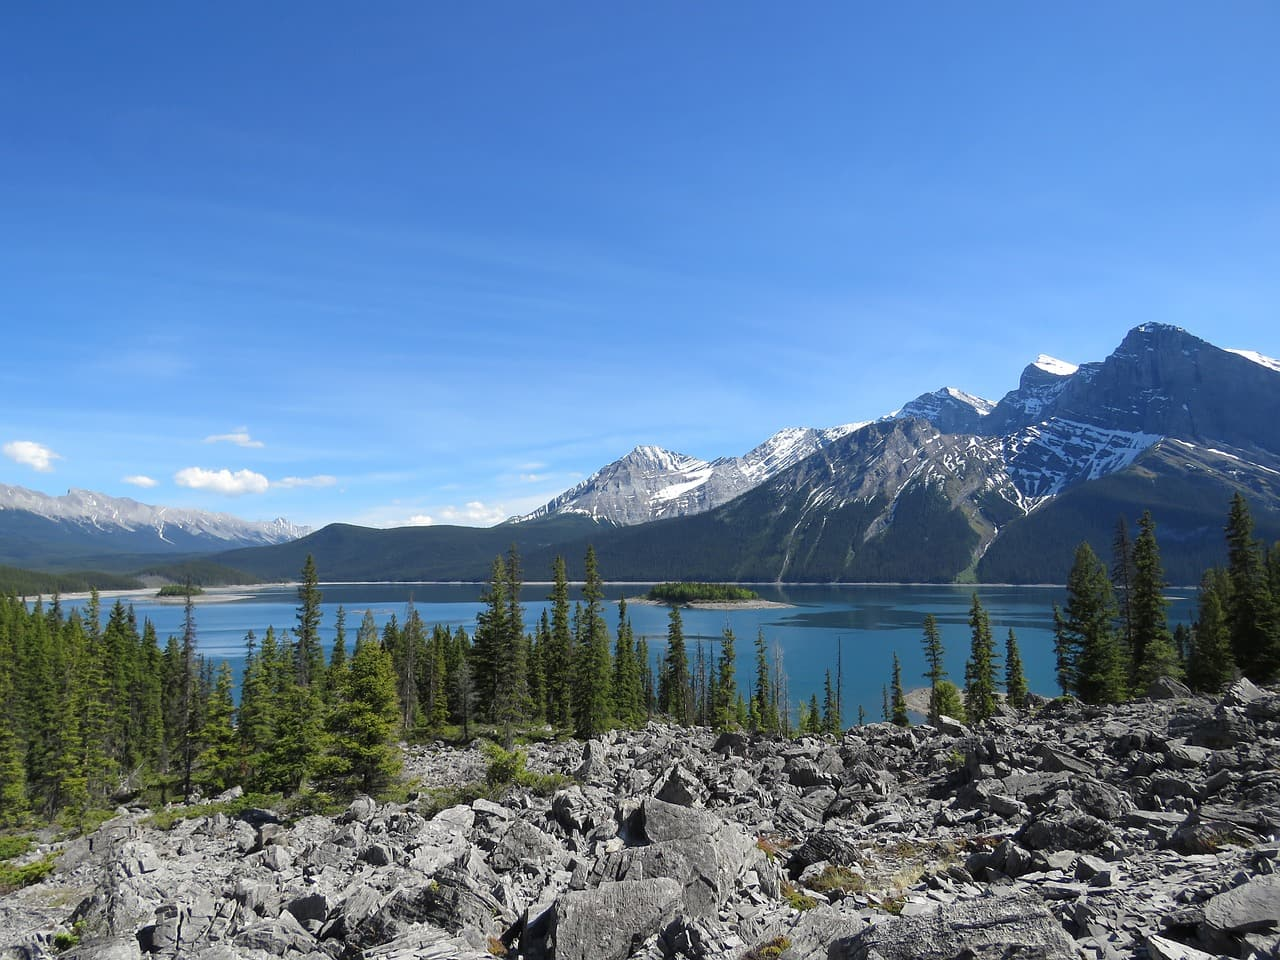 upper-kananaskis-lake-1440134_1280-min